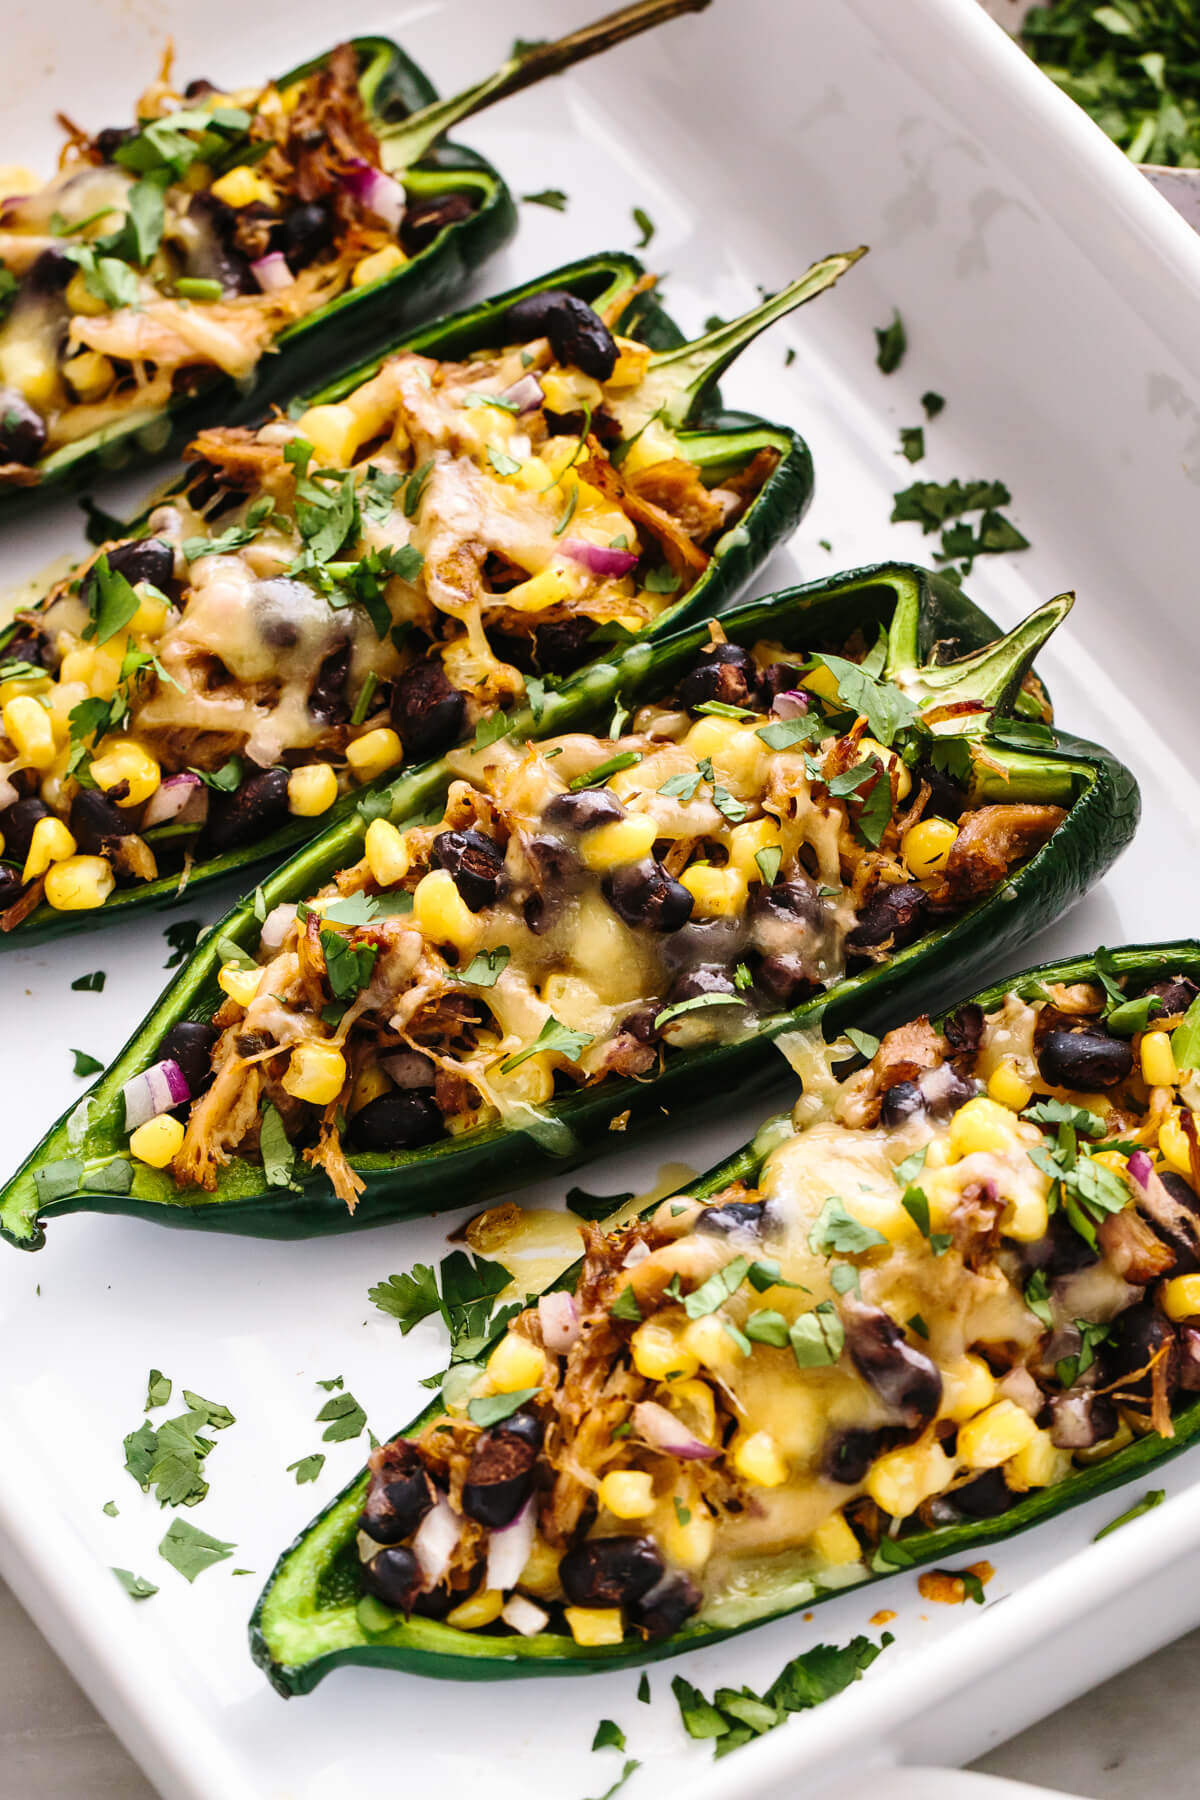 A baking dish with carnitas stuffed poblano peppers.